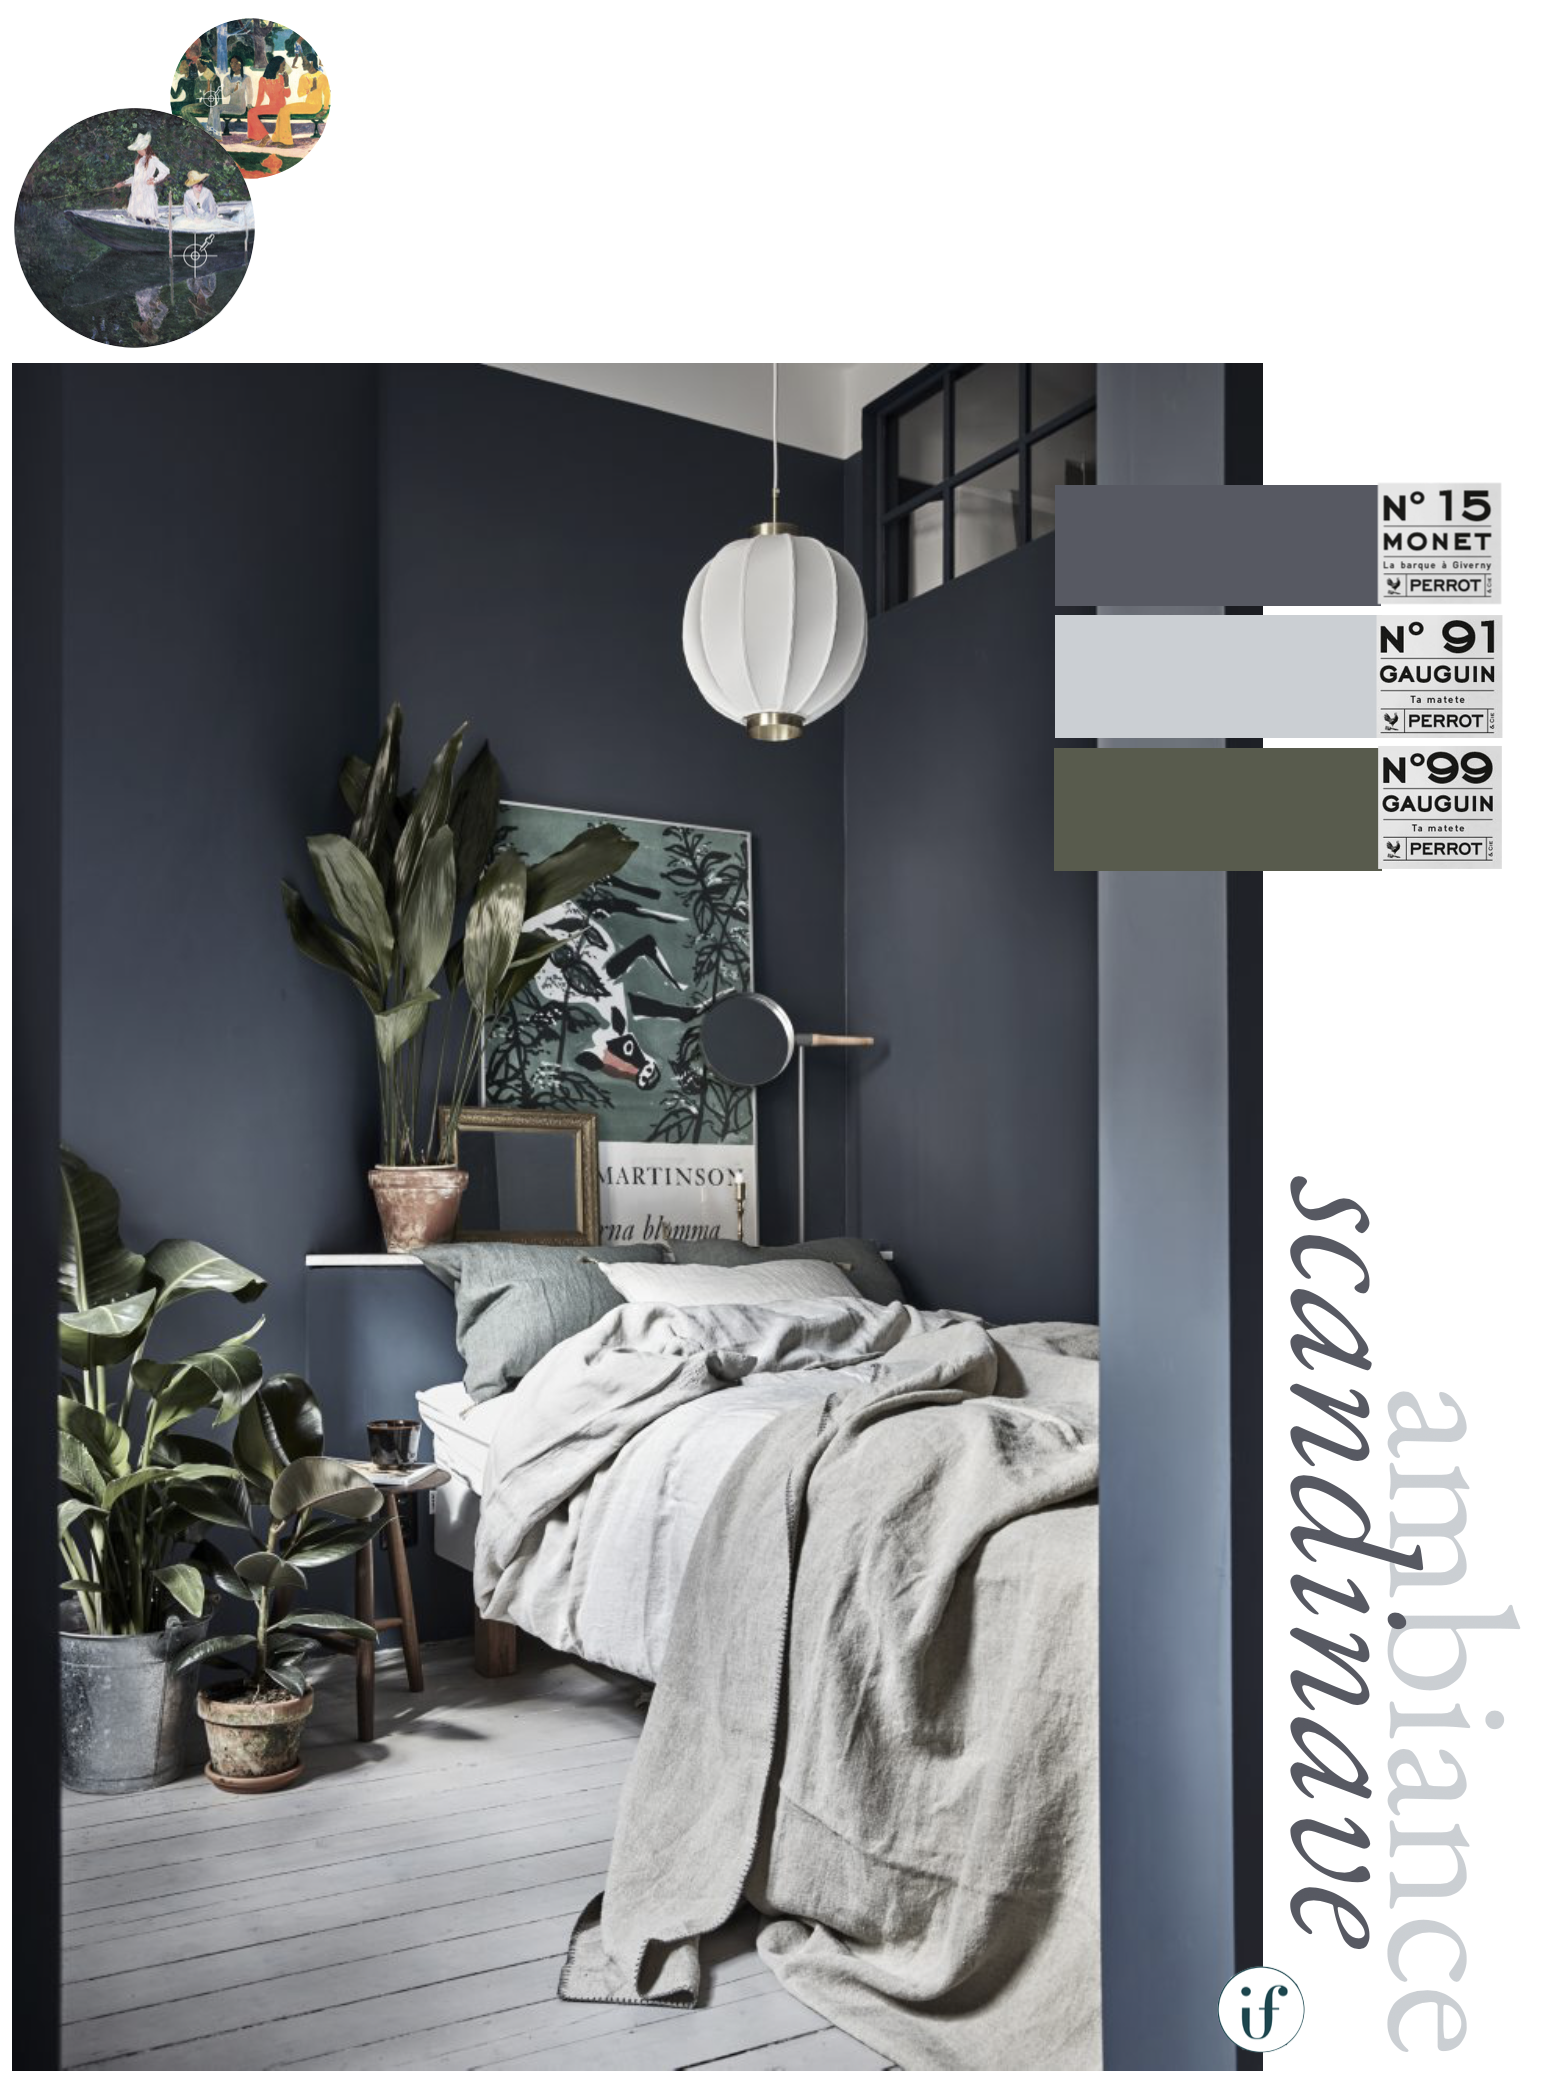 ilaria fatone x perrot - paint brand inspired by impressionistes- blue bedroom